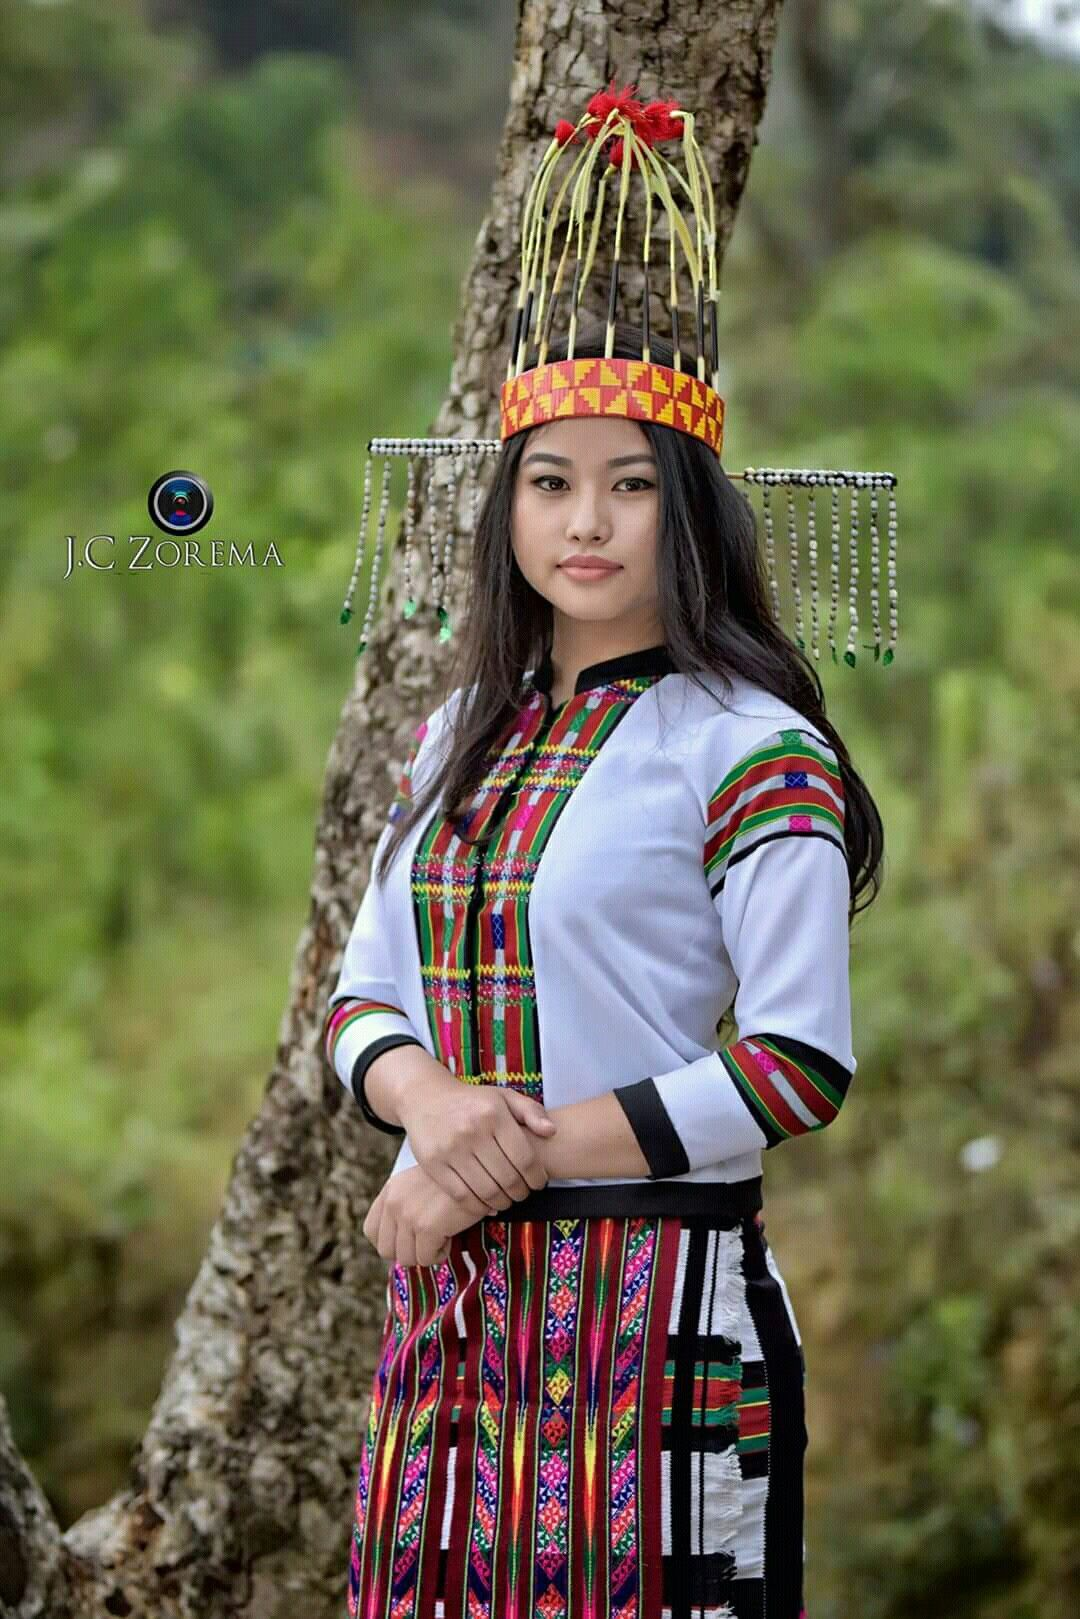 AND, I just love Mizo girls. They are always amazingly